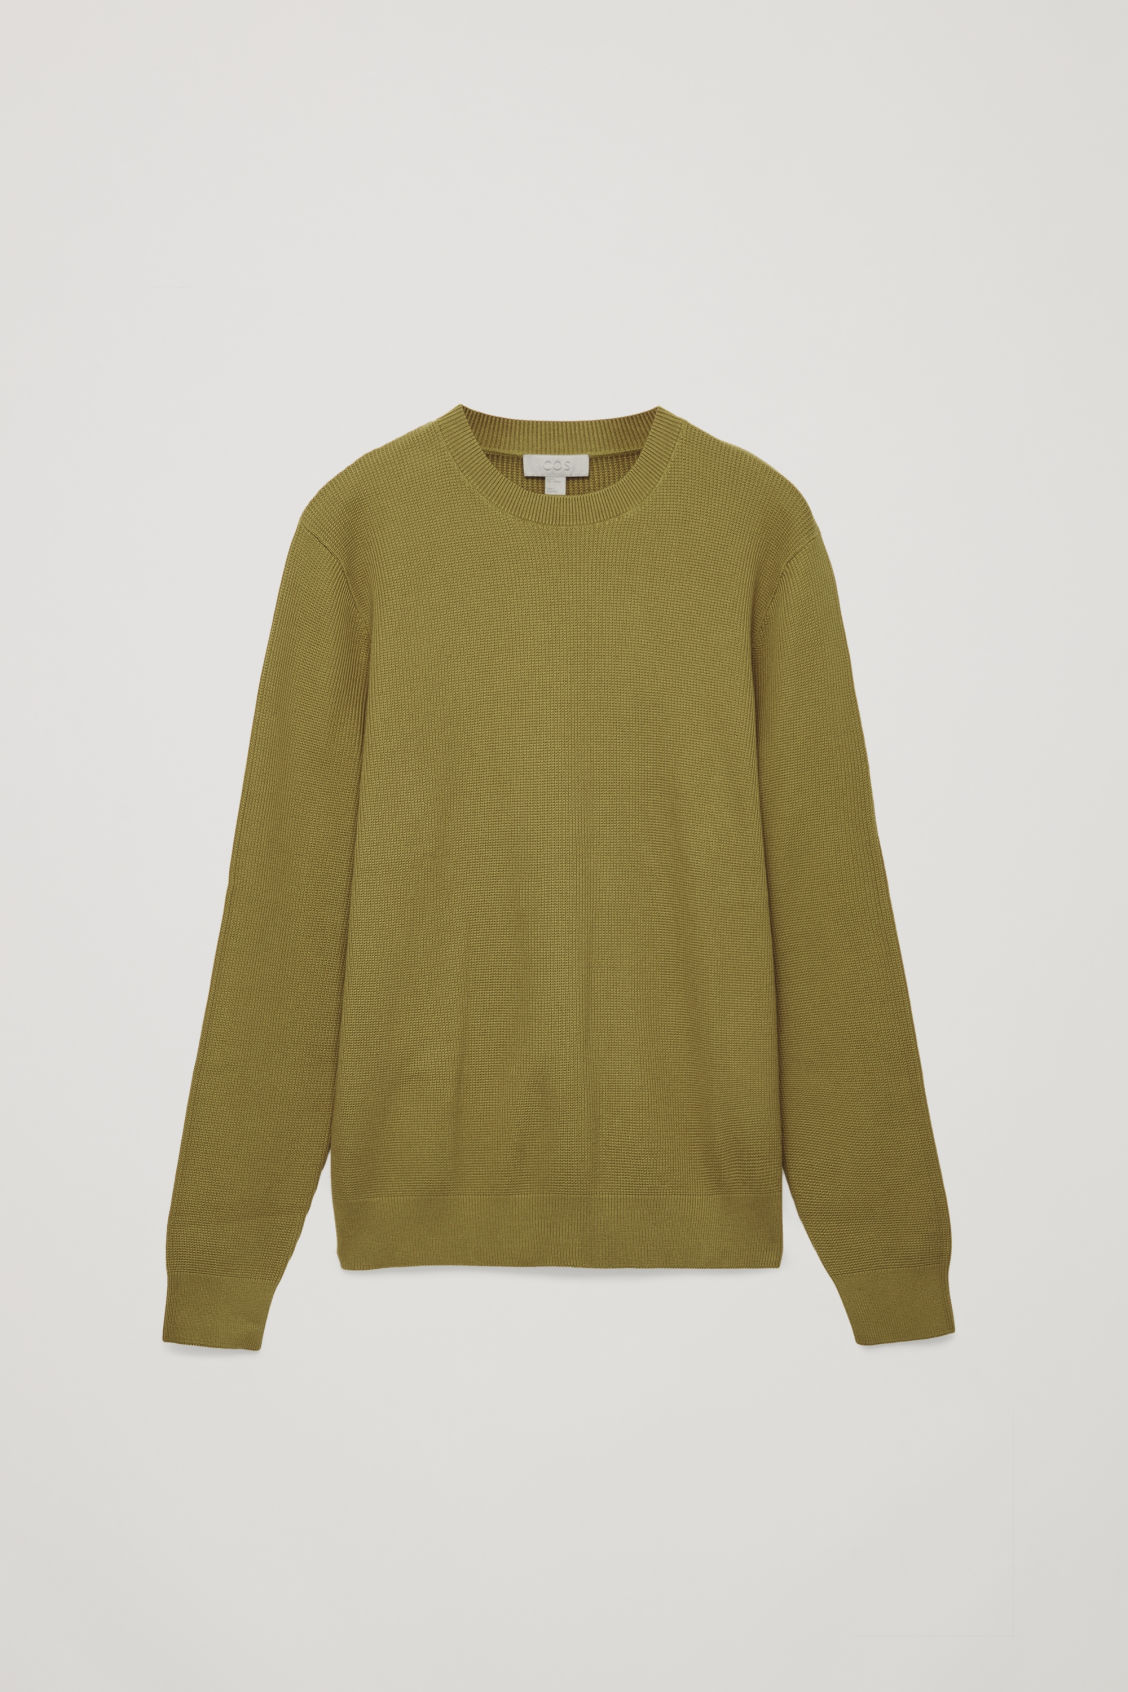 Front image of Cos moss-stitch knit jumper in yellow